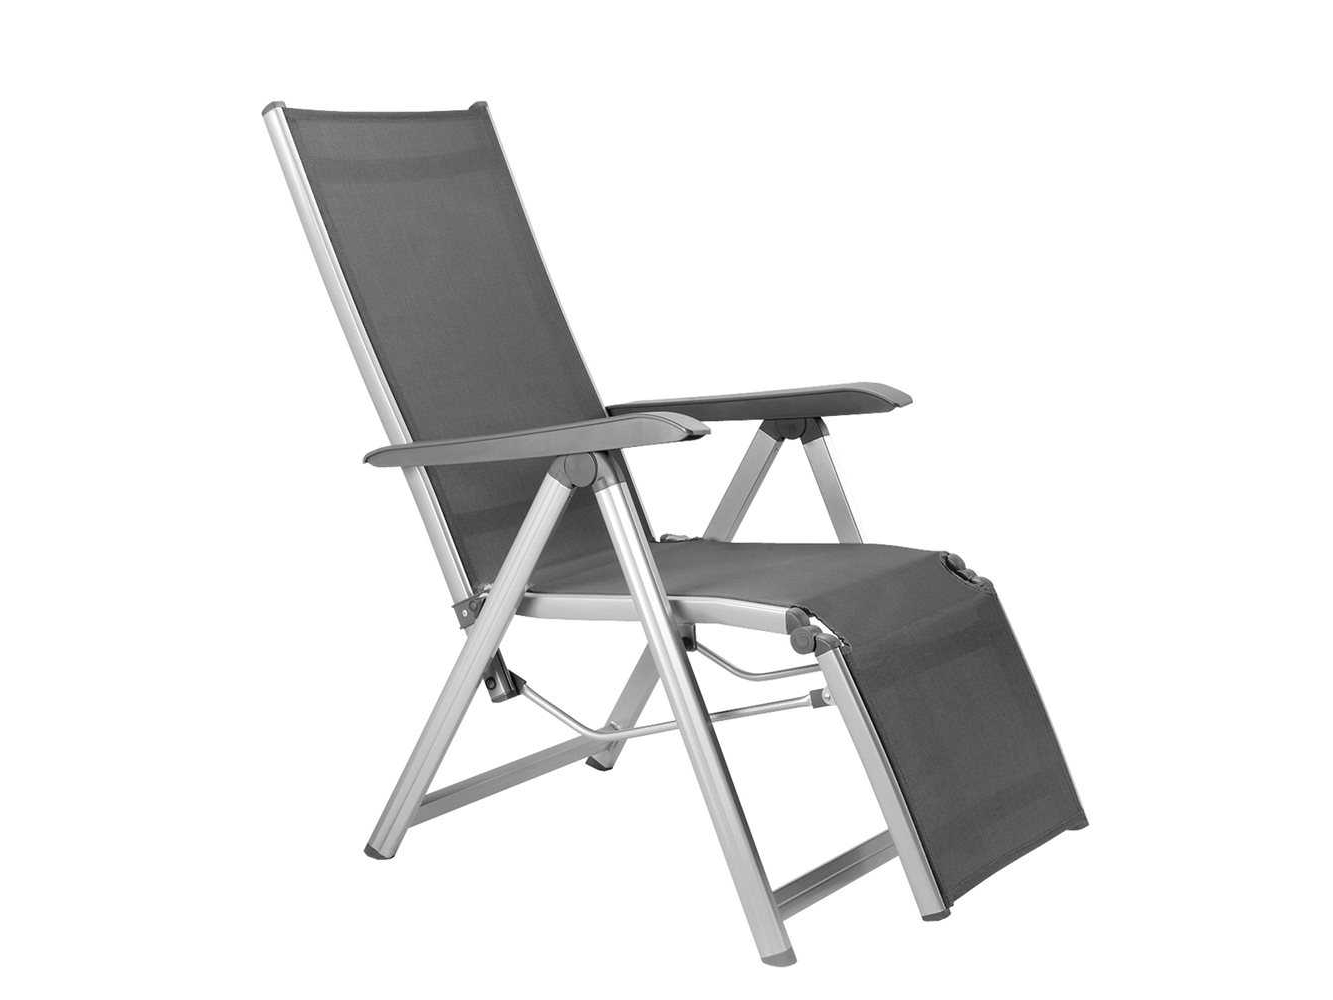 301216-0000 intended for Kettler Chaise Lounge Chairs